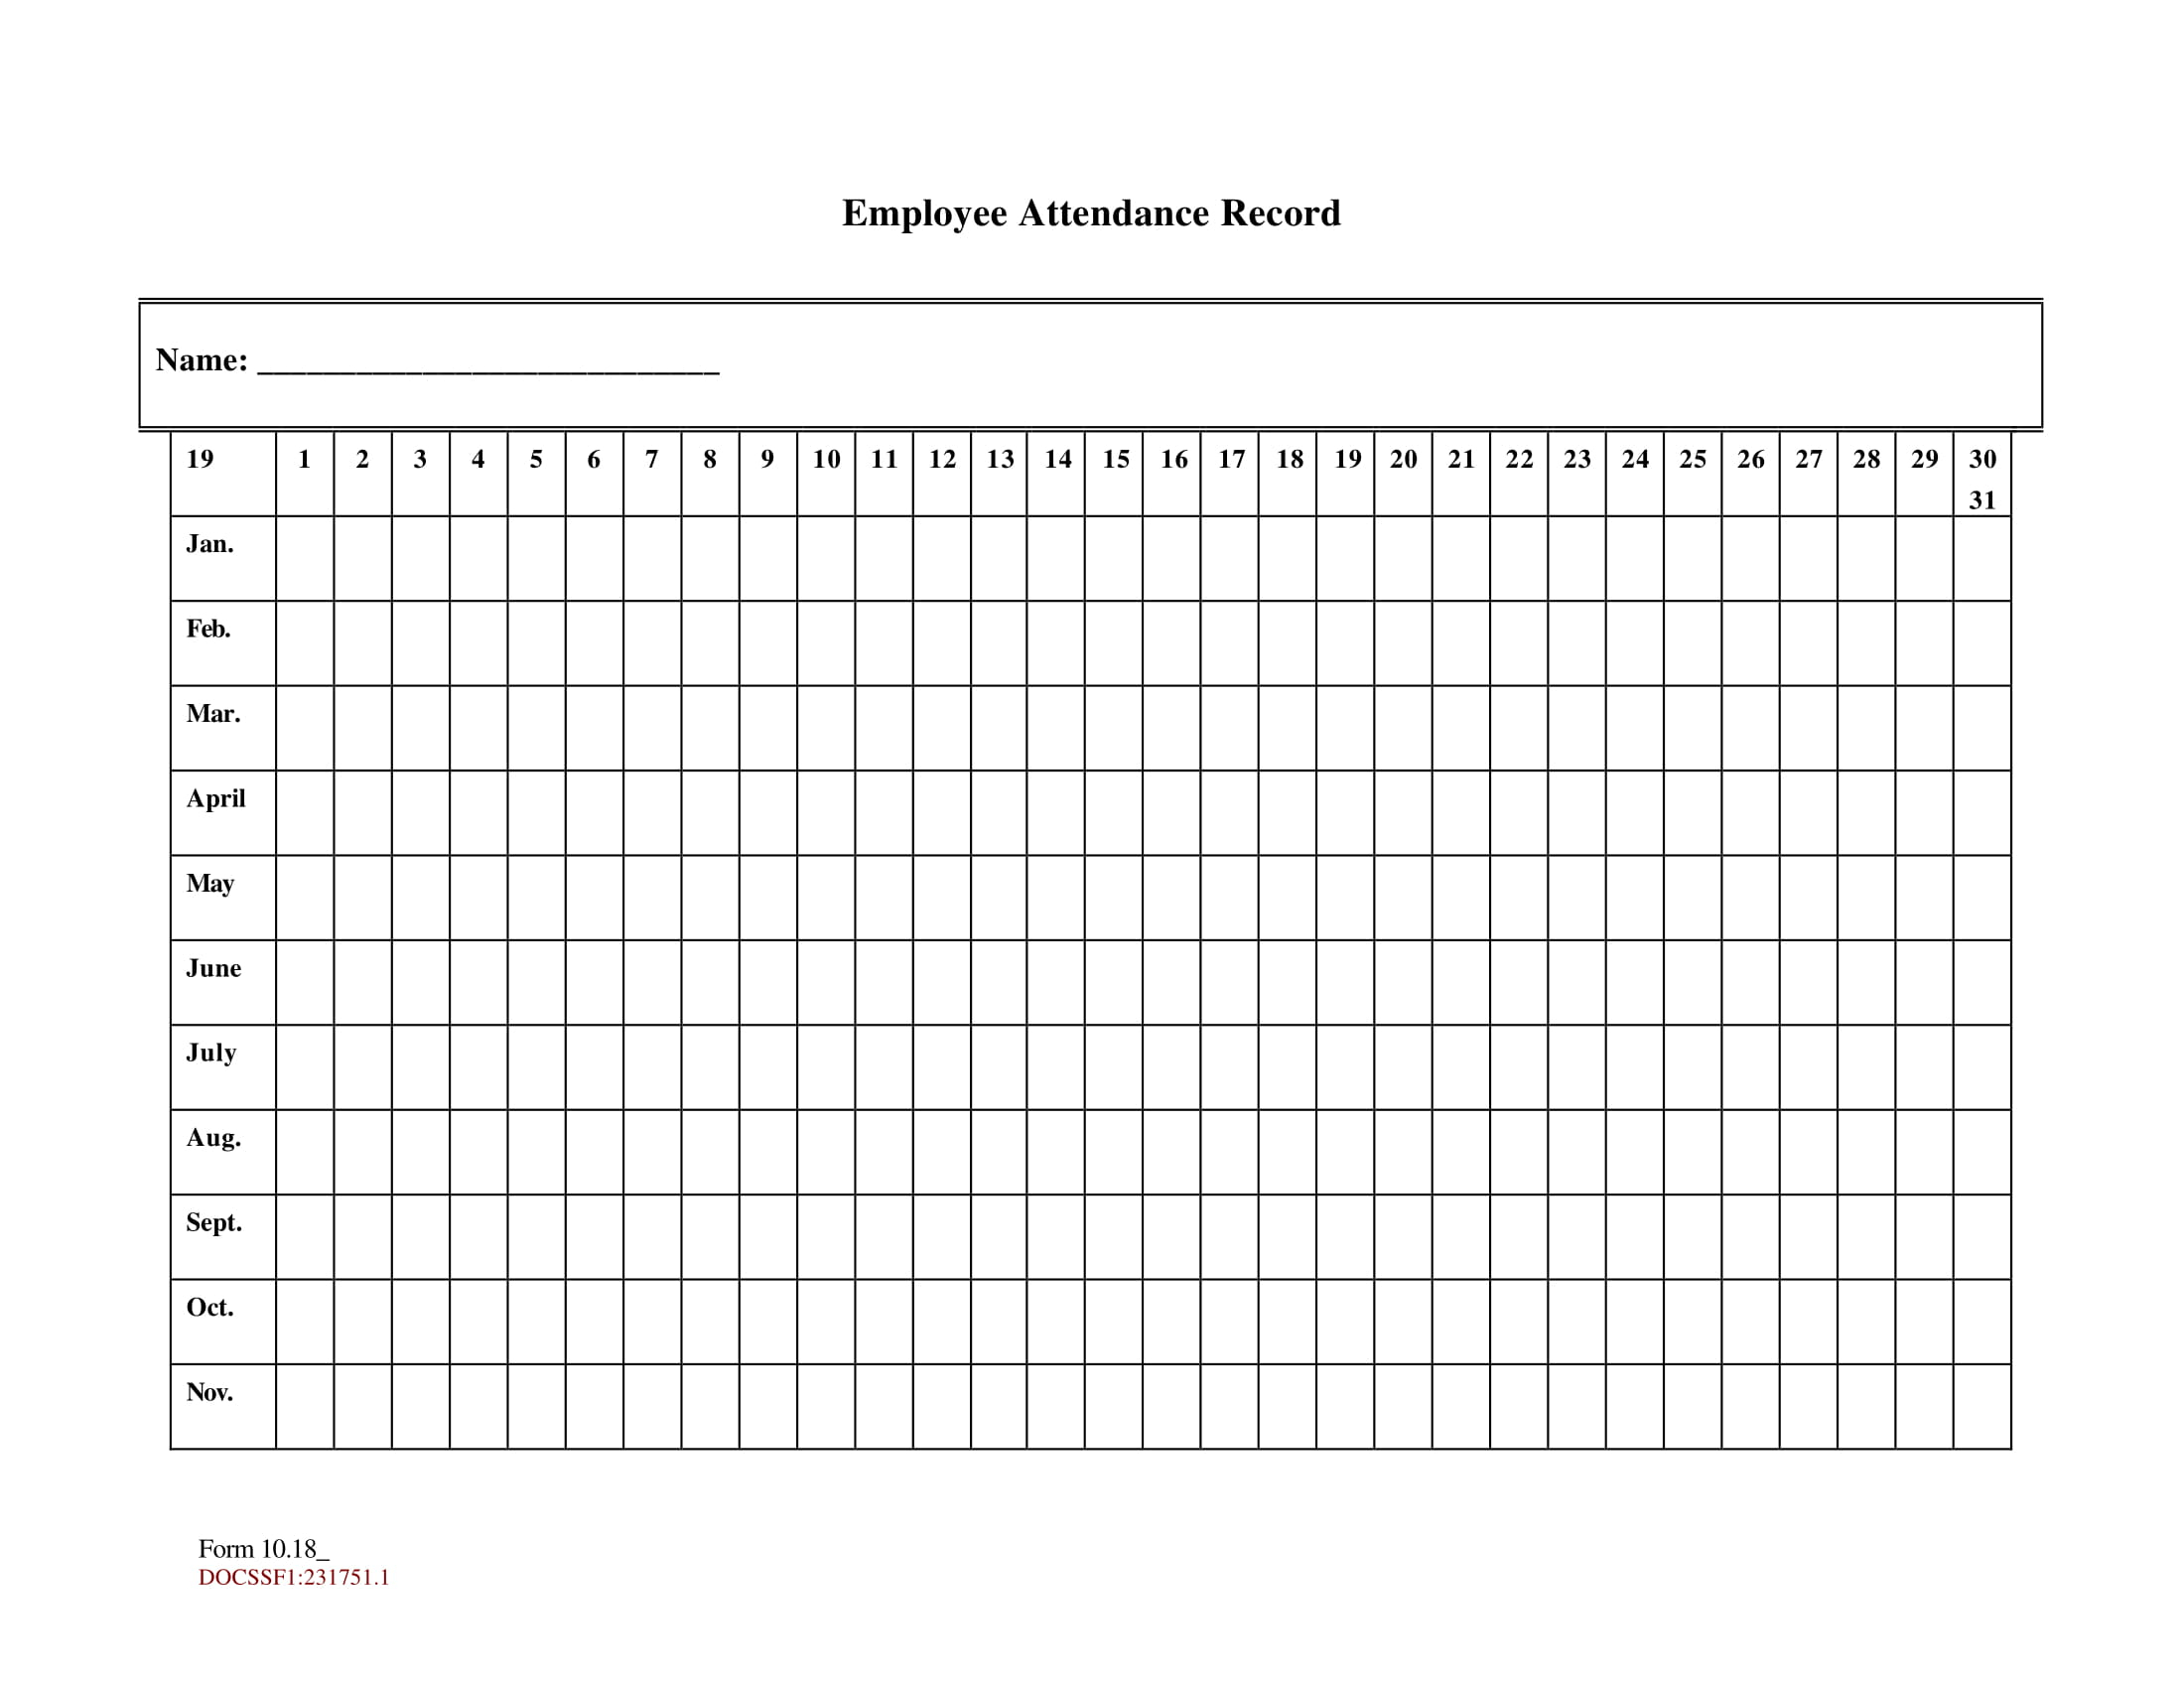 Keeping Track Of Employee Attendance Spreadsheet For 10  Printable Attendance Sheet Examples  Pdf, Word